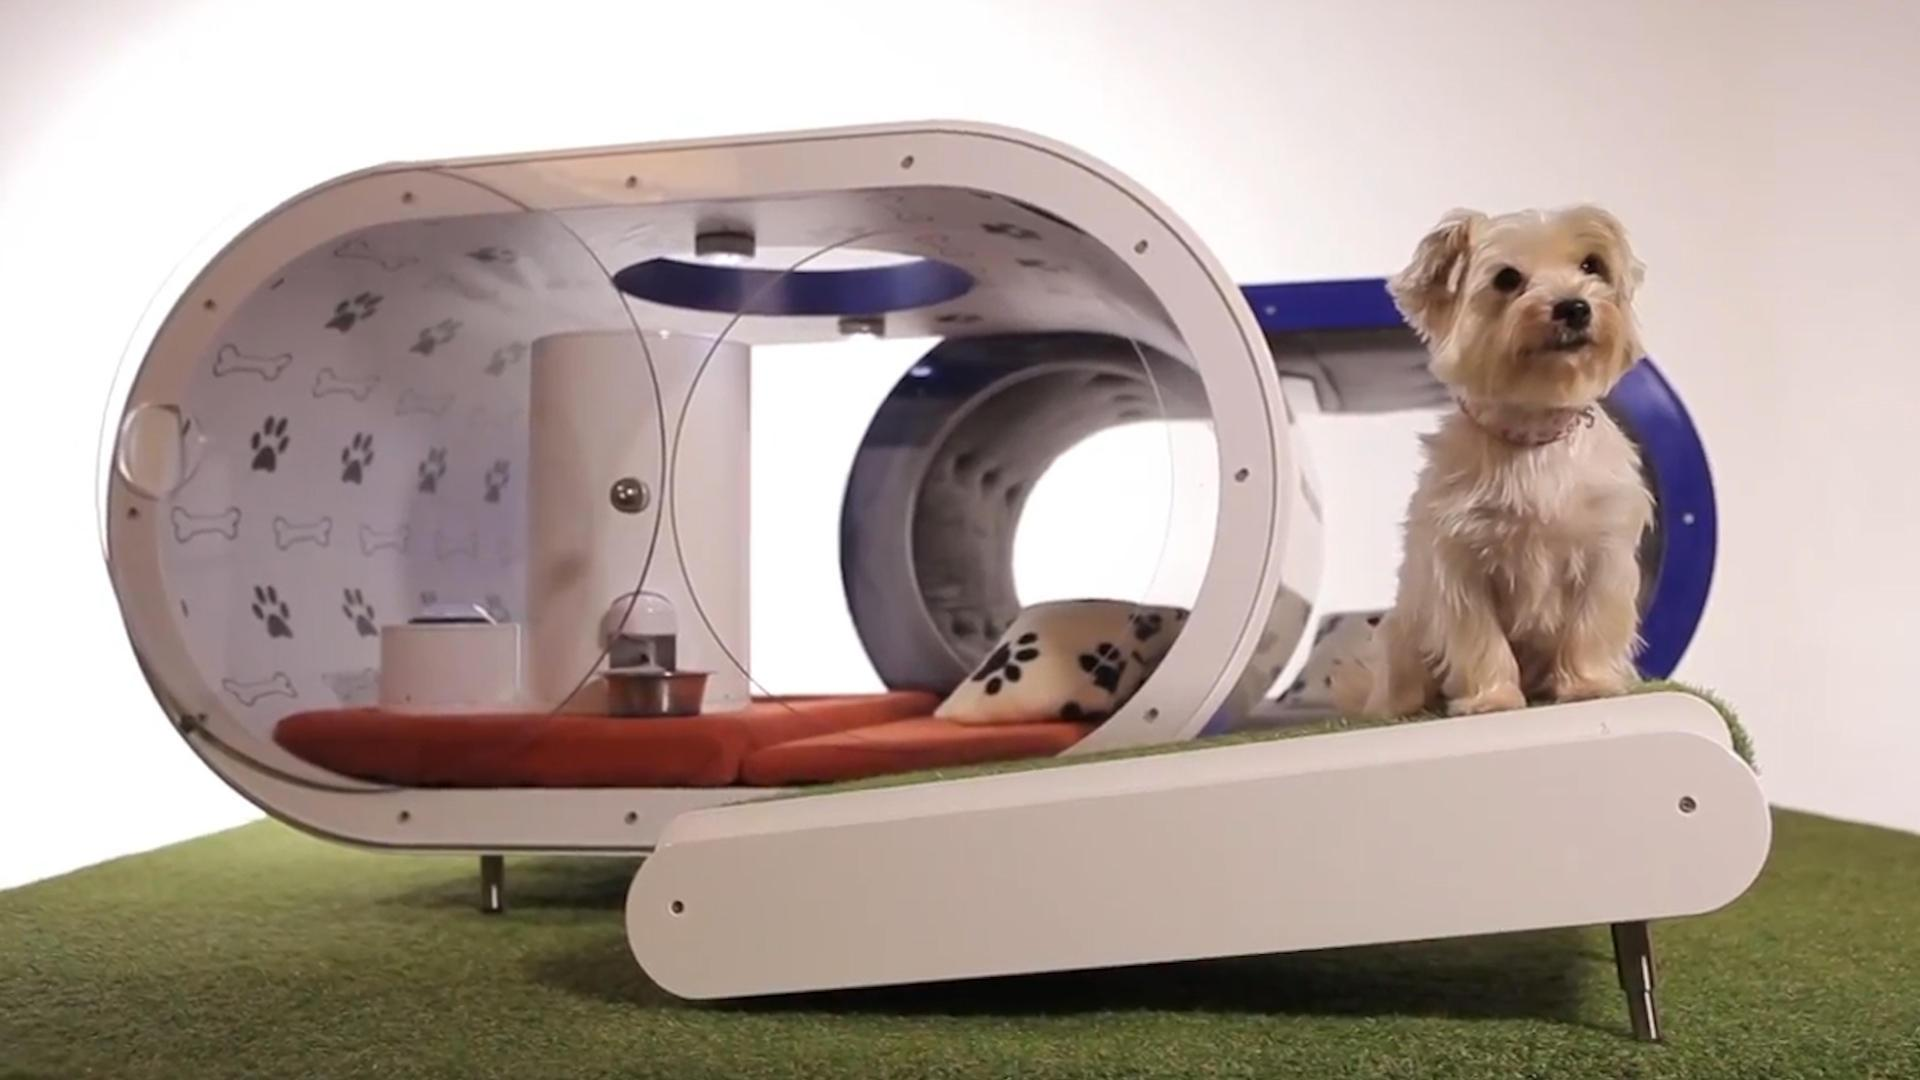 Tomorrow Daily 140: Google's Atari AI, a futuristic doghouse for £20,000 and more